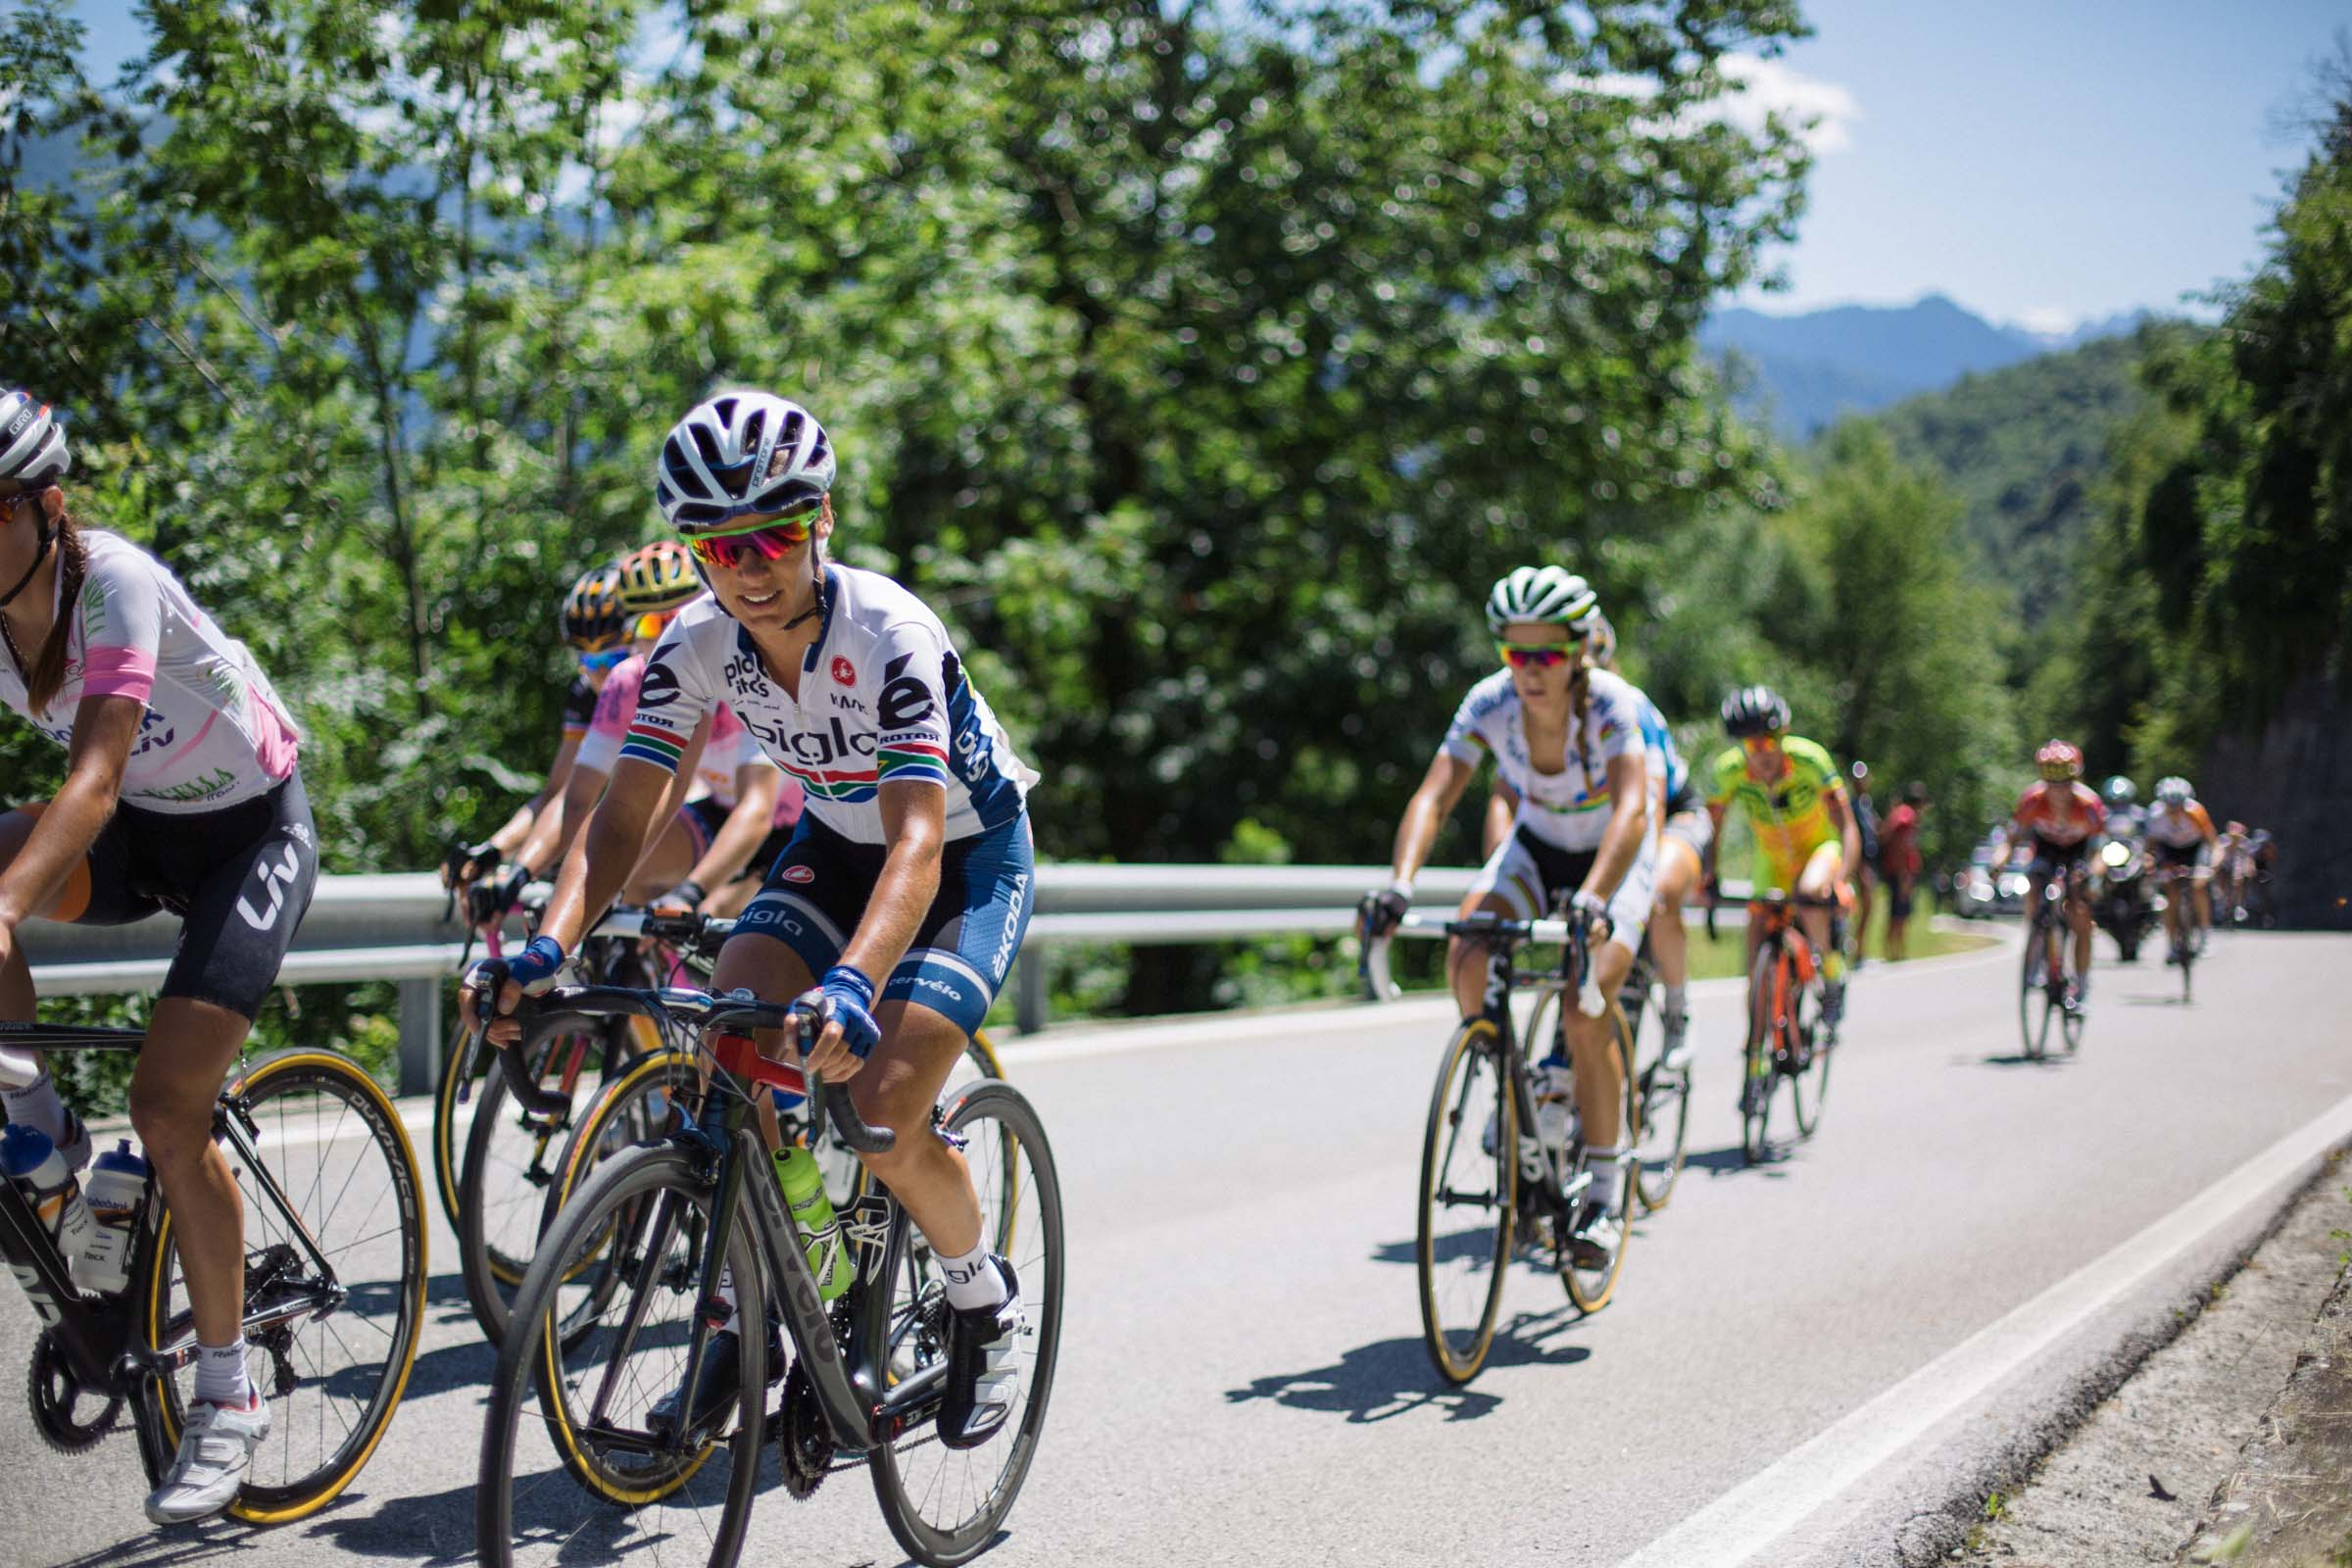 Ashleigh Moolman-Pasio leads the chasing group during the 6th stage of the 2015 Giro Rosa